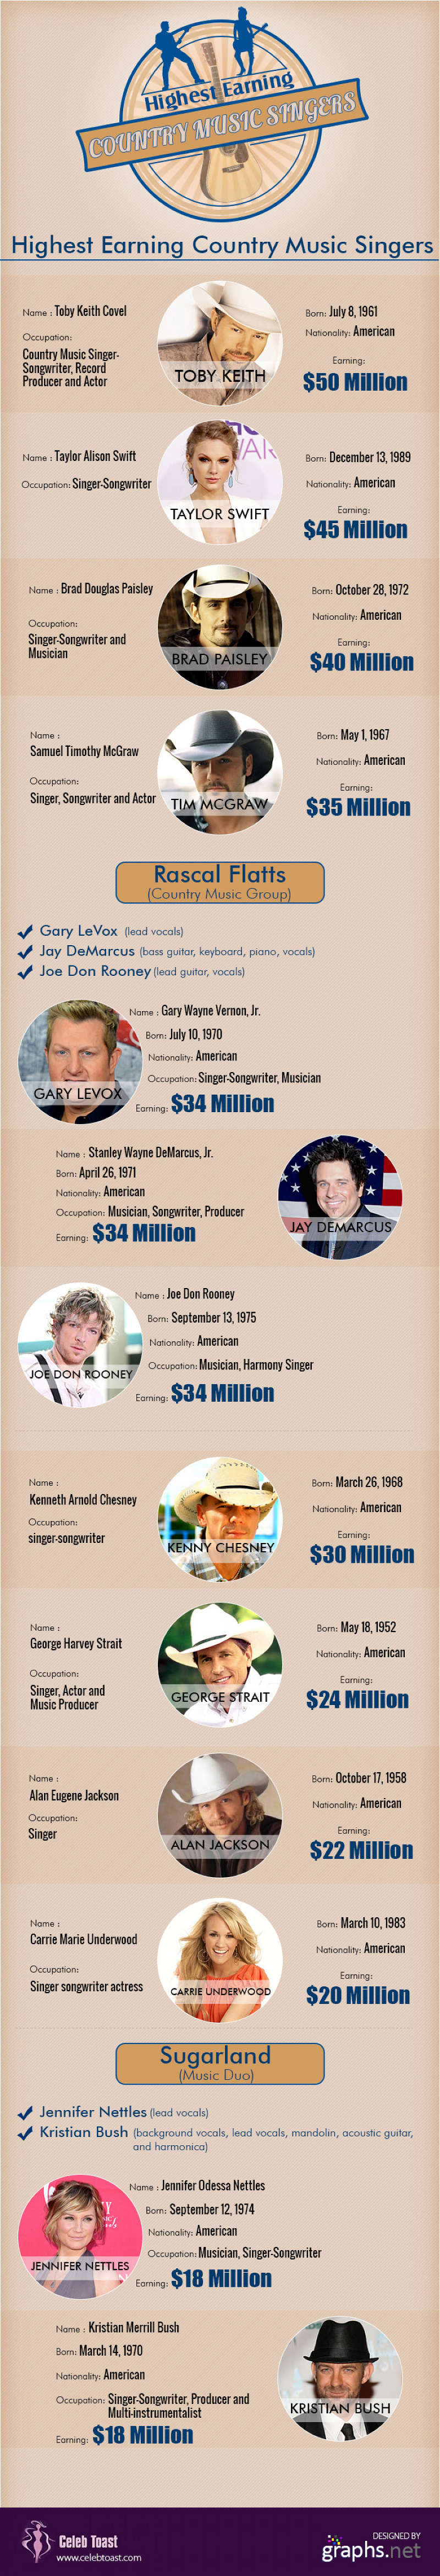 Top Country Music Singers